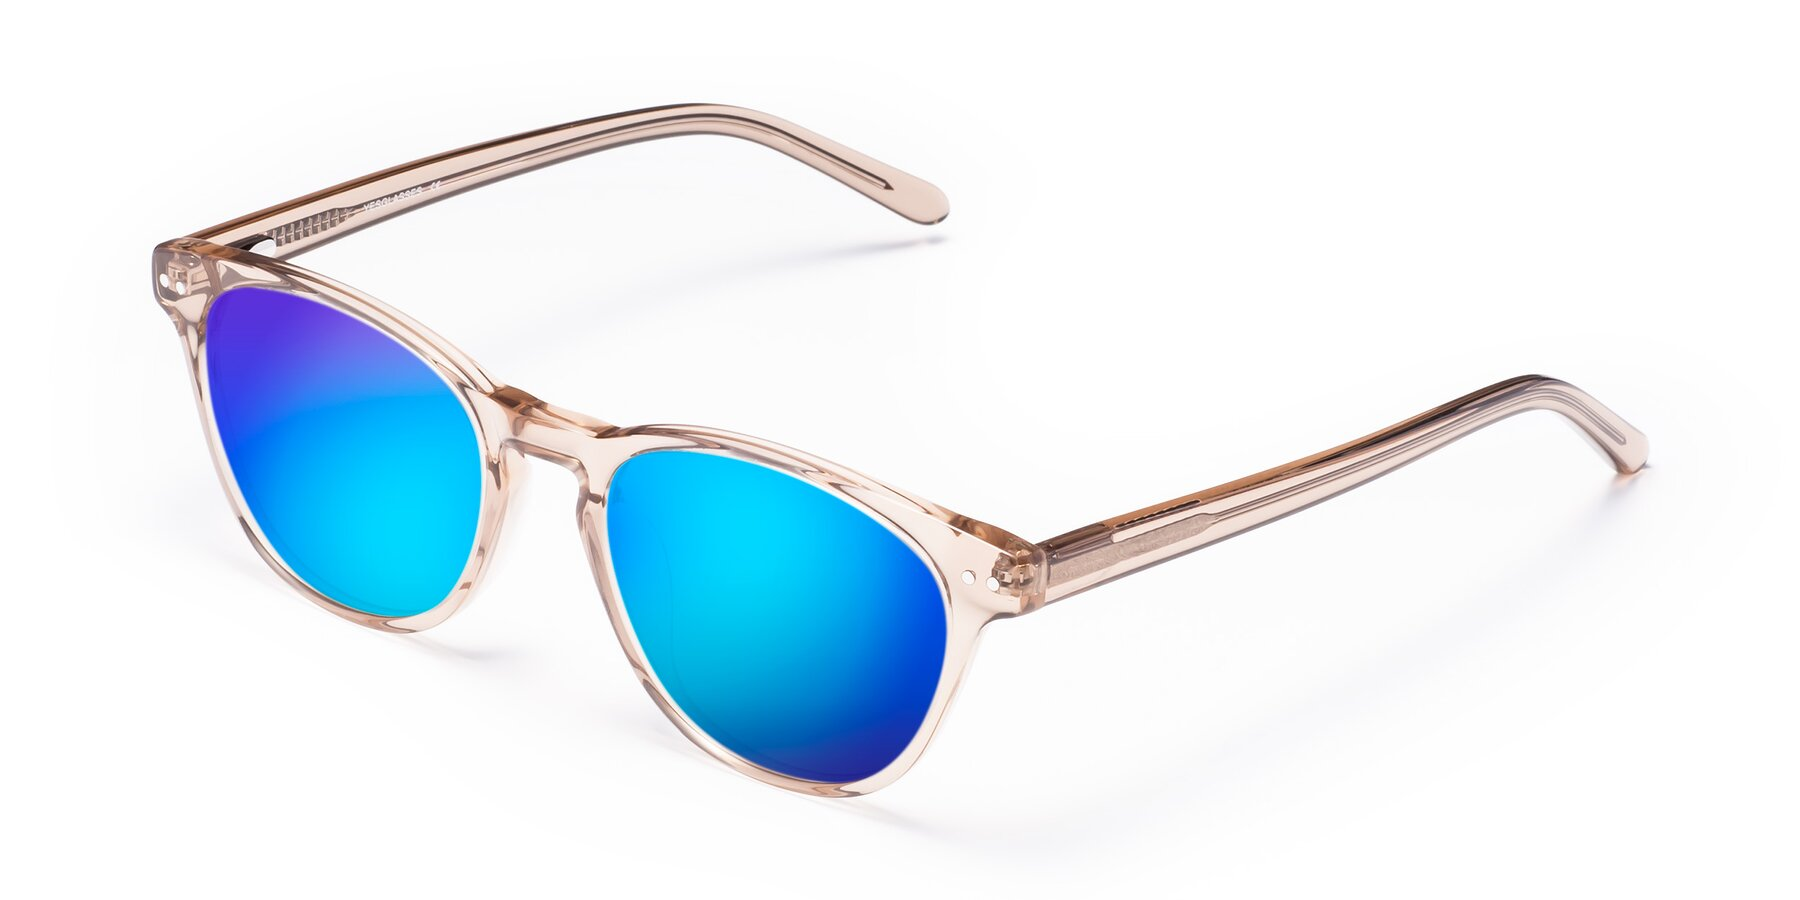 Angle of Blaze in light Brown with Blue Mirrored Lenses